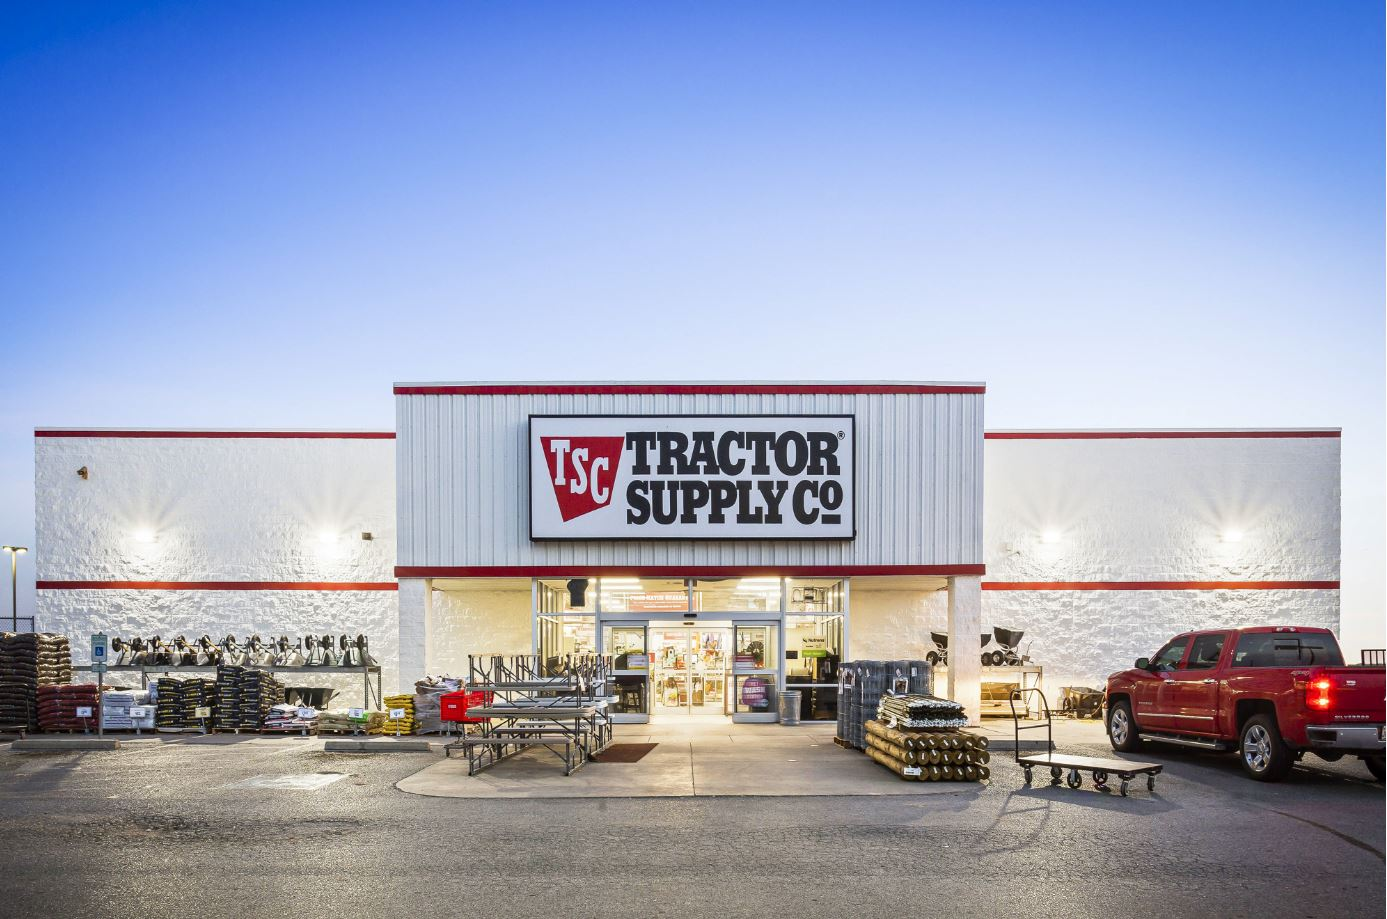 Picture of a Tractor Supply Co. store as a Triple Net property - Liberty Real Estate.